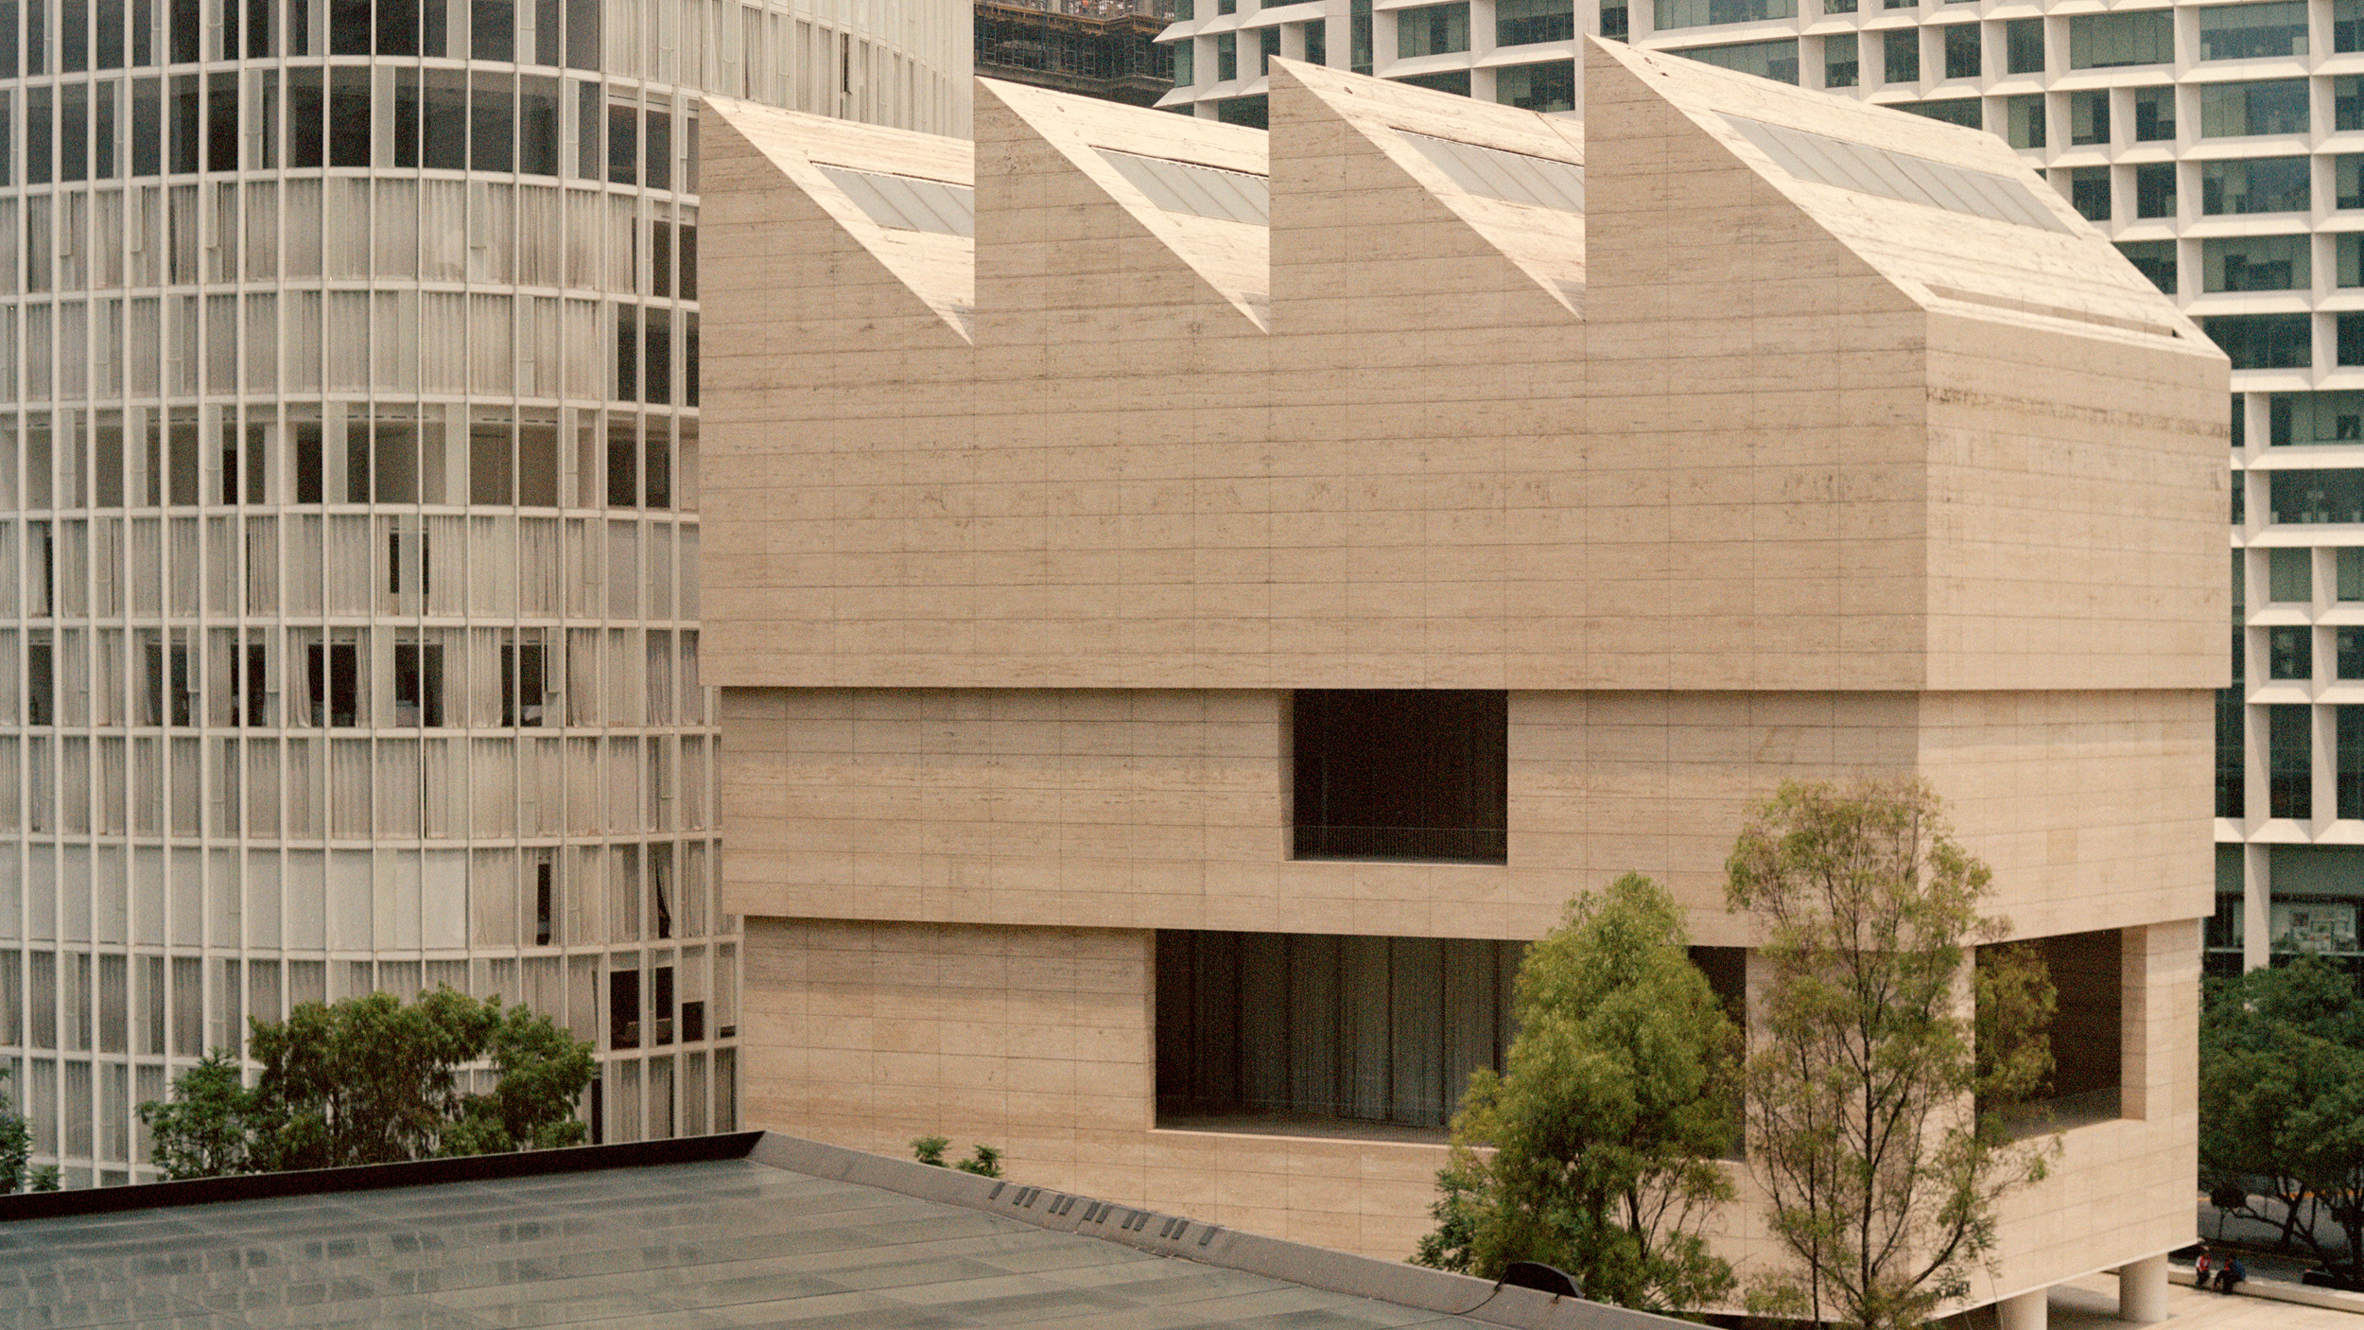 Company: David Chipperfield Architects